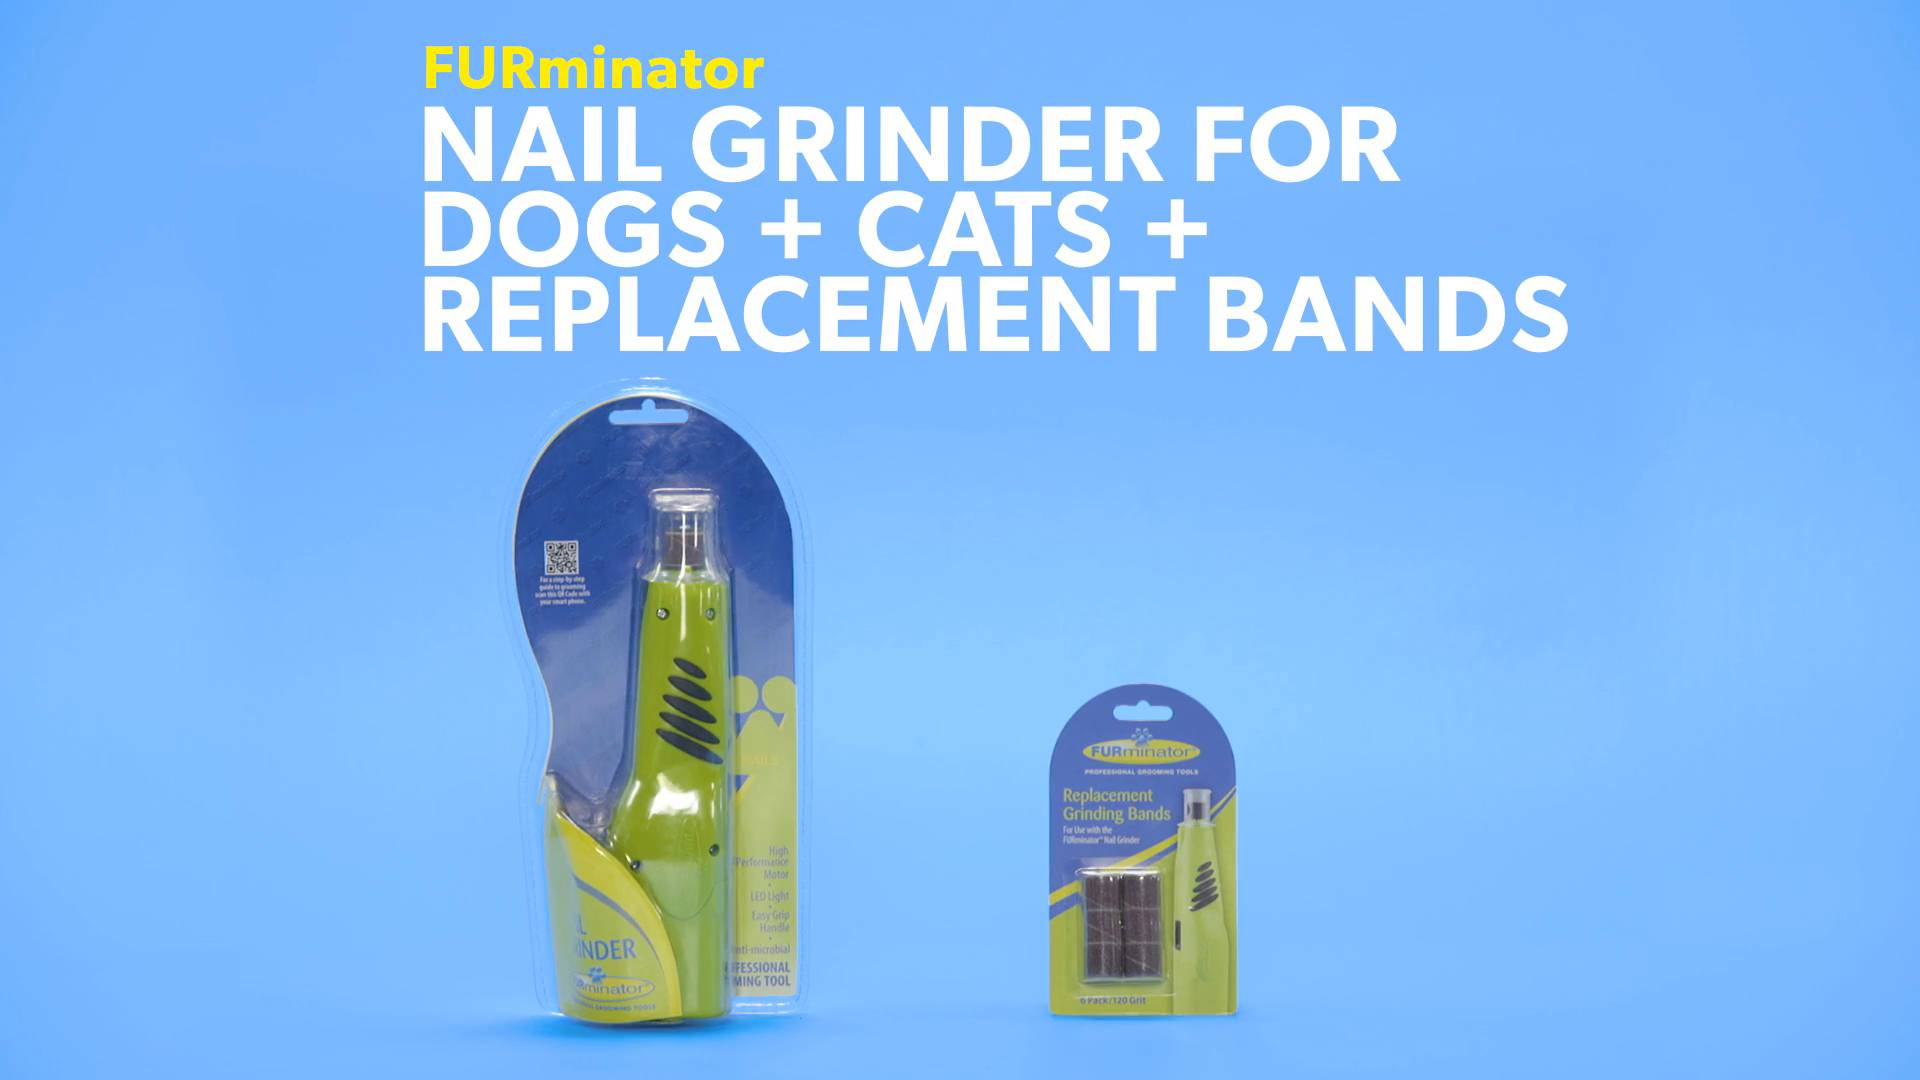 FURminator Nail Grinder For Dogs and Cats - Chewy.com